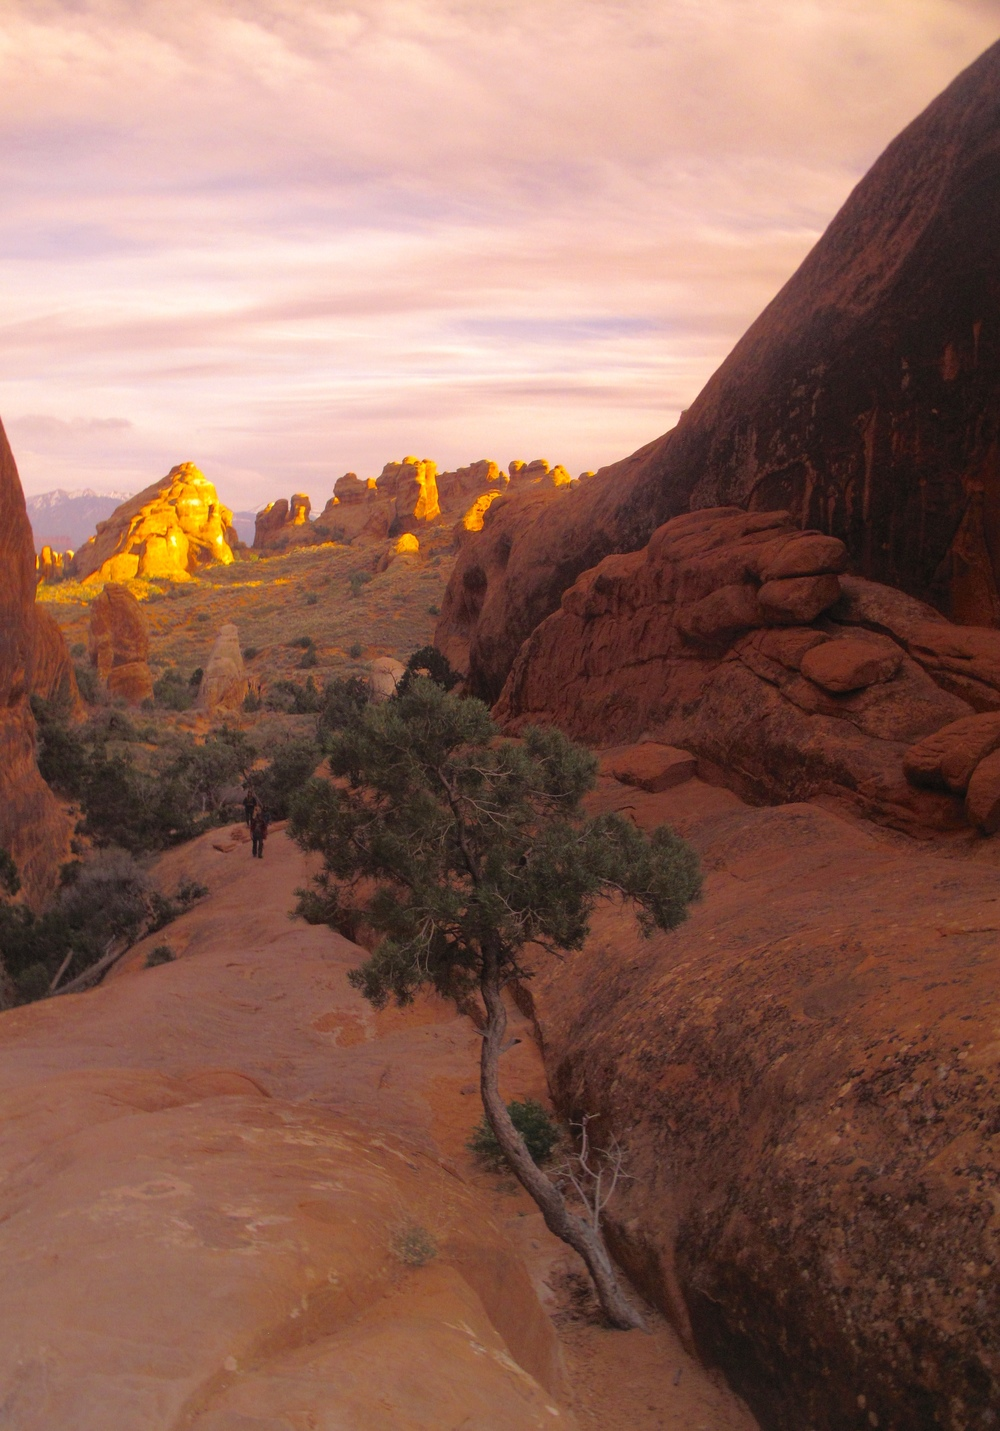 Small desert tree in Arches National Park at sunset.